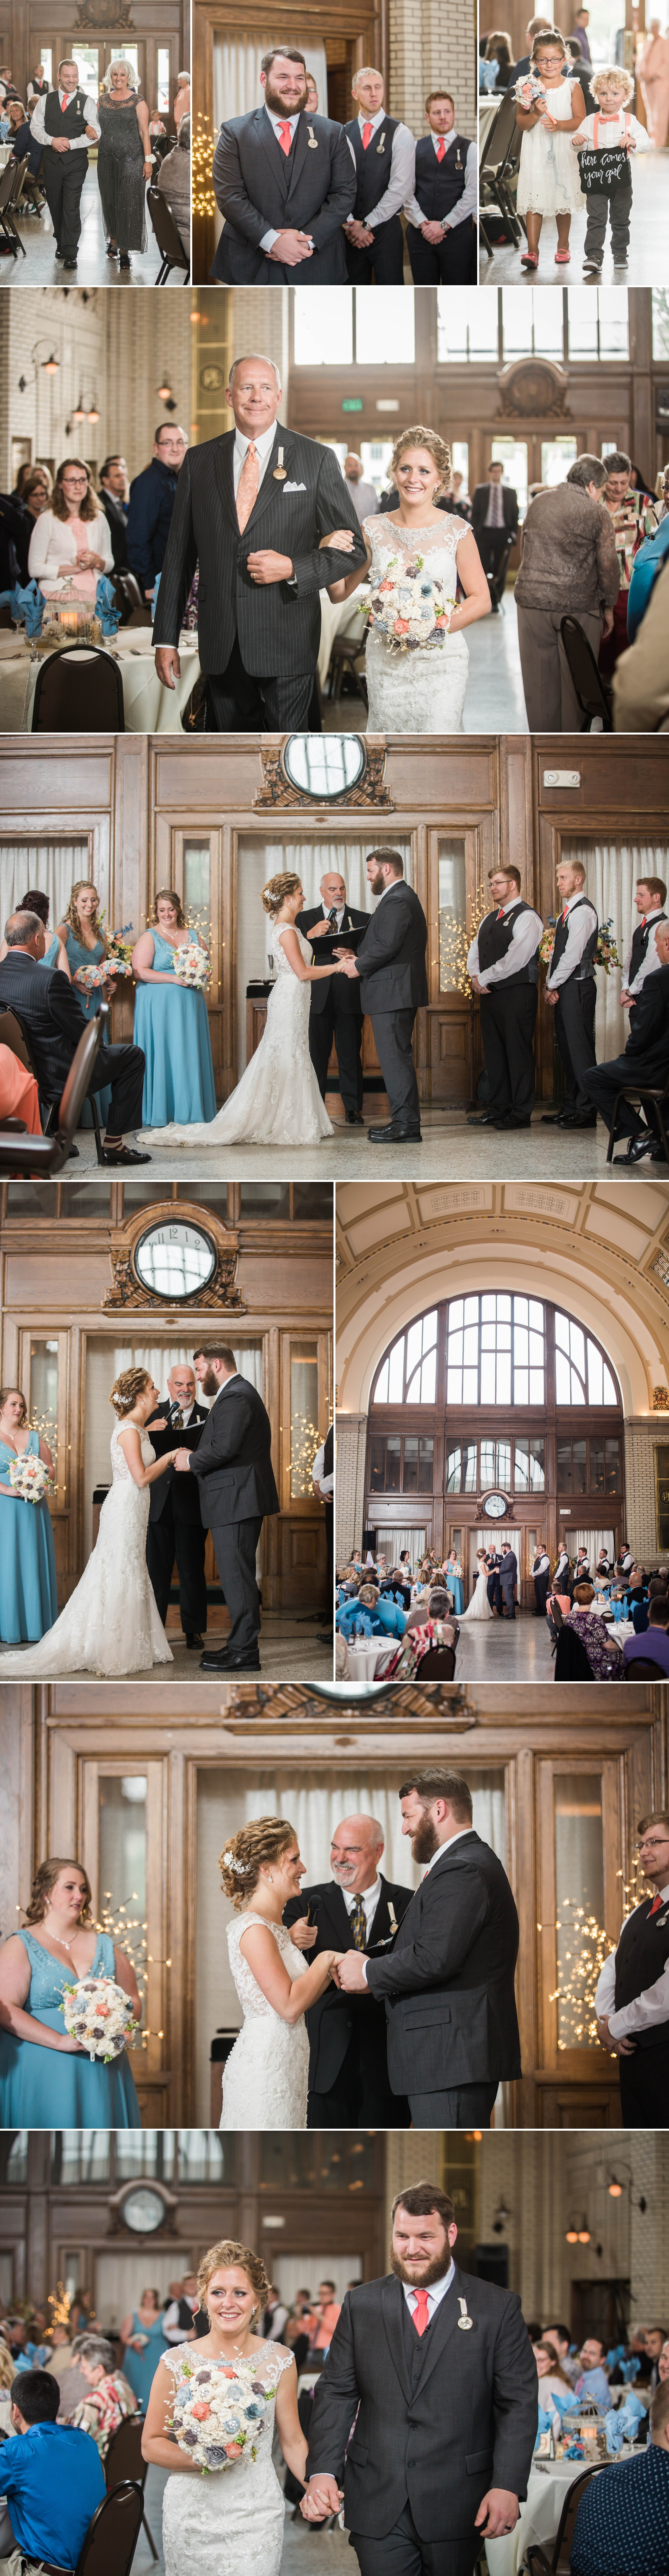 wedding day - wedding ceremony - bride - groom - train station